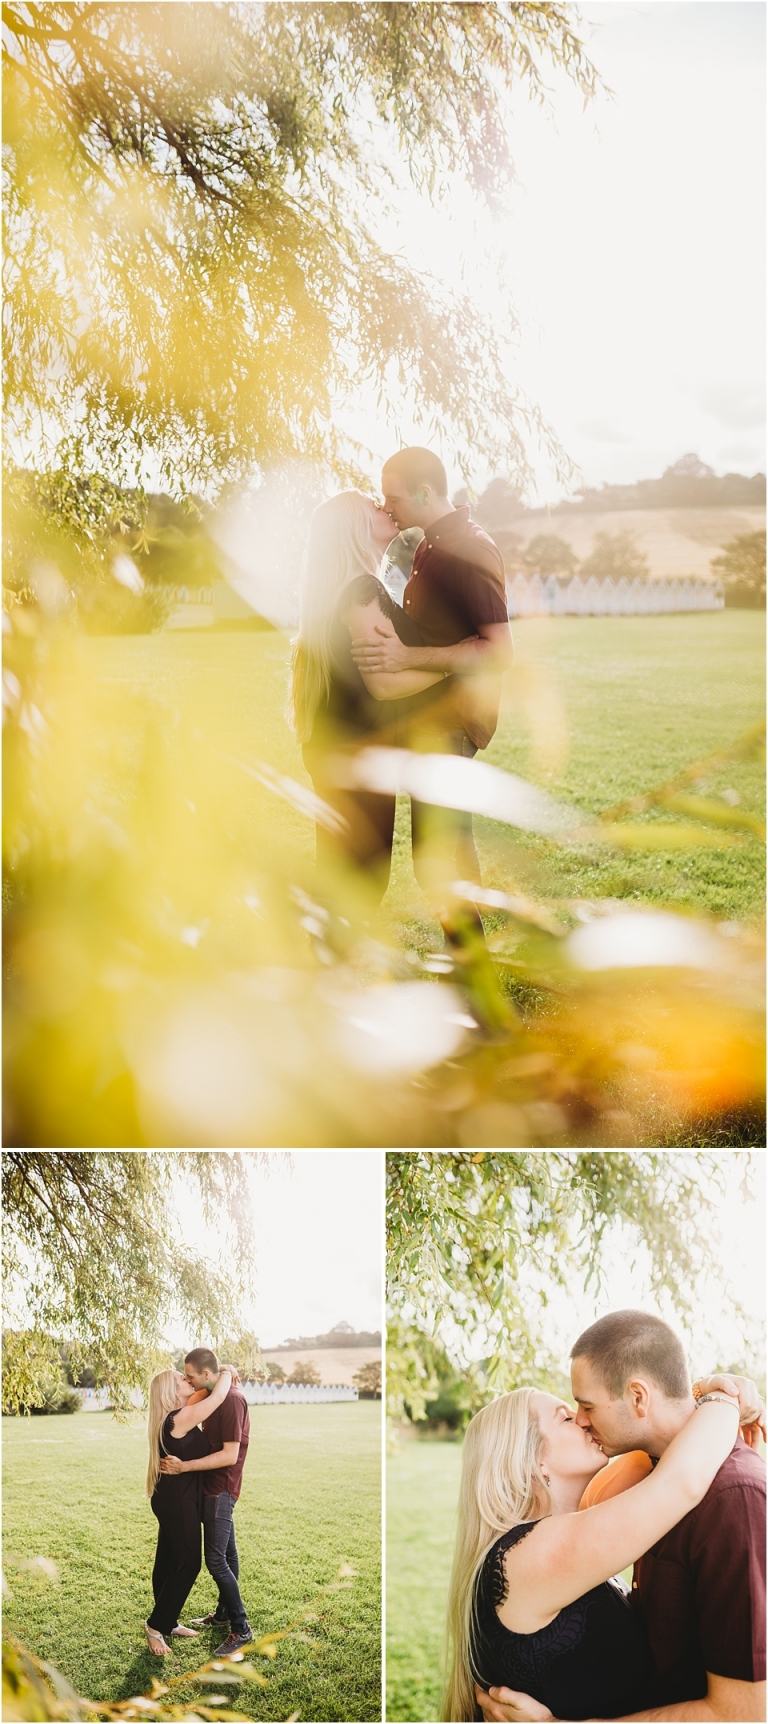 Broadsands Beach & Elberry Cove, Paignton Couple Photoshoot 2 - couple kissing in sunset under tree